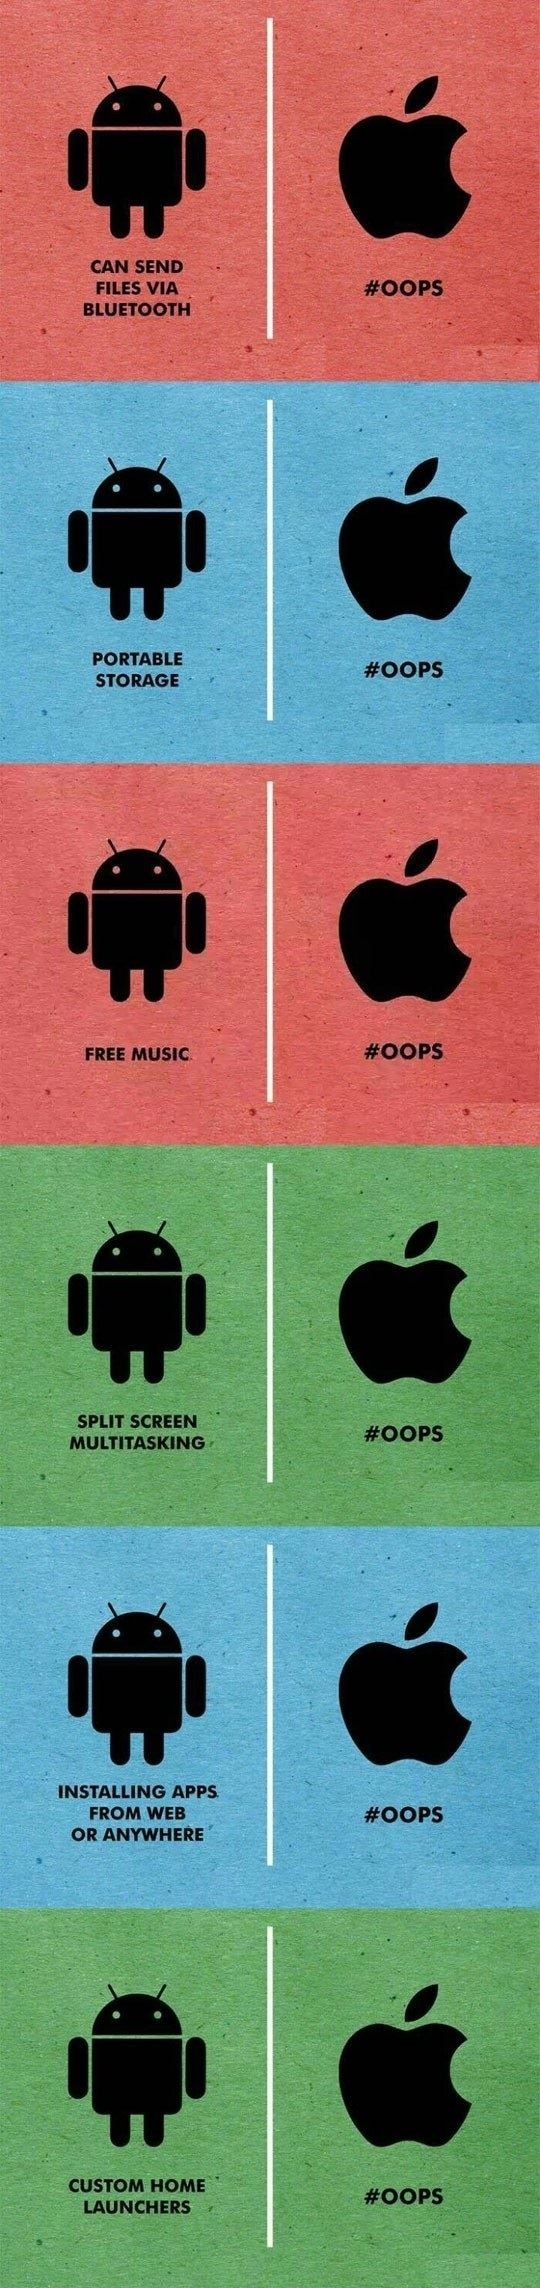 Android Vs Apple Iphone Humor Android Vs Iphone Iphone Meme